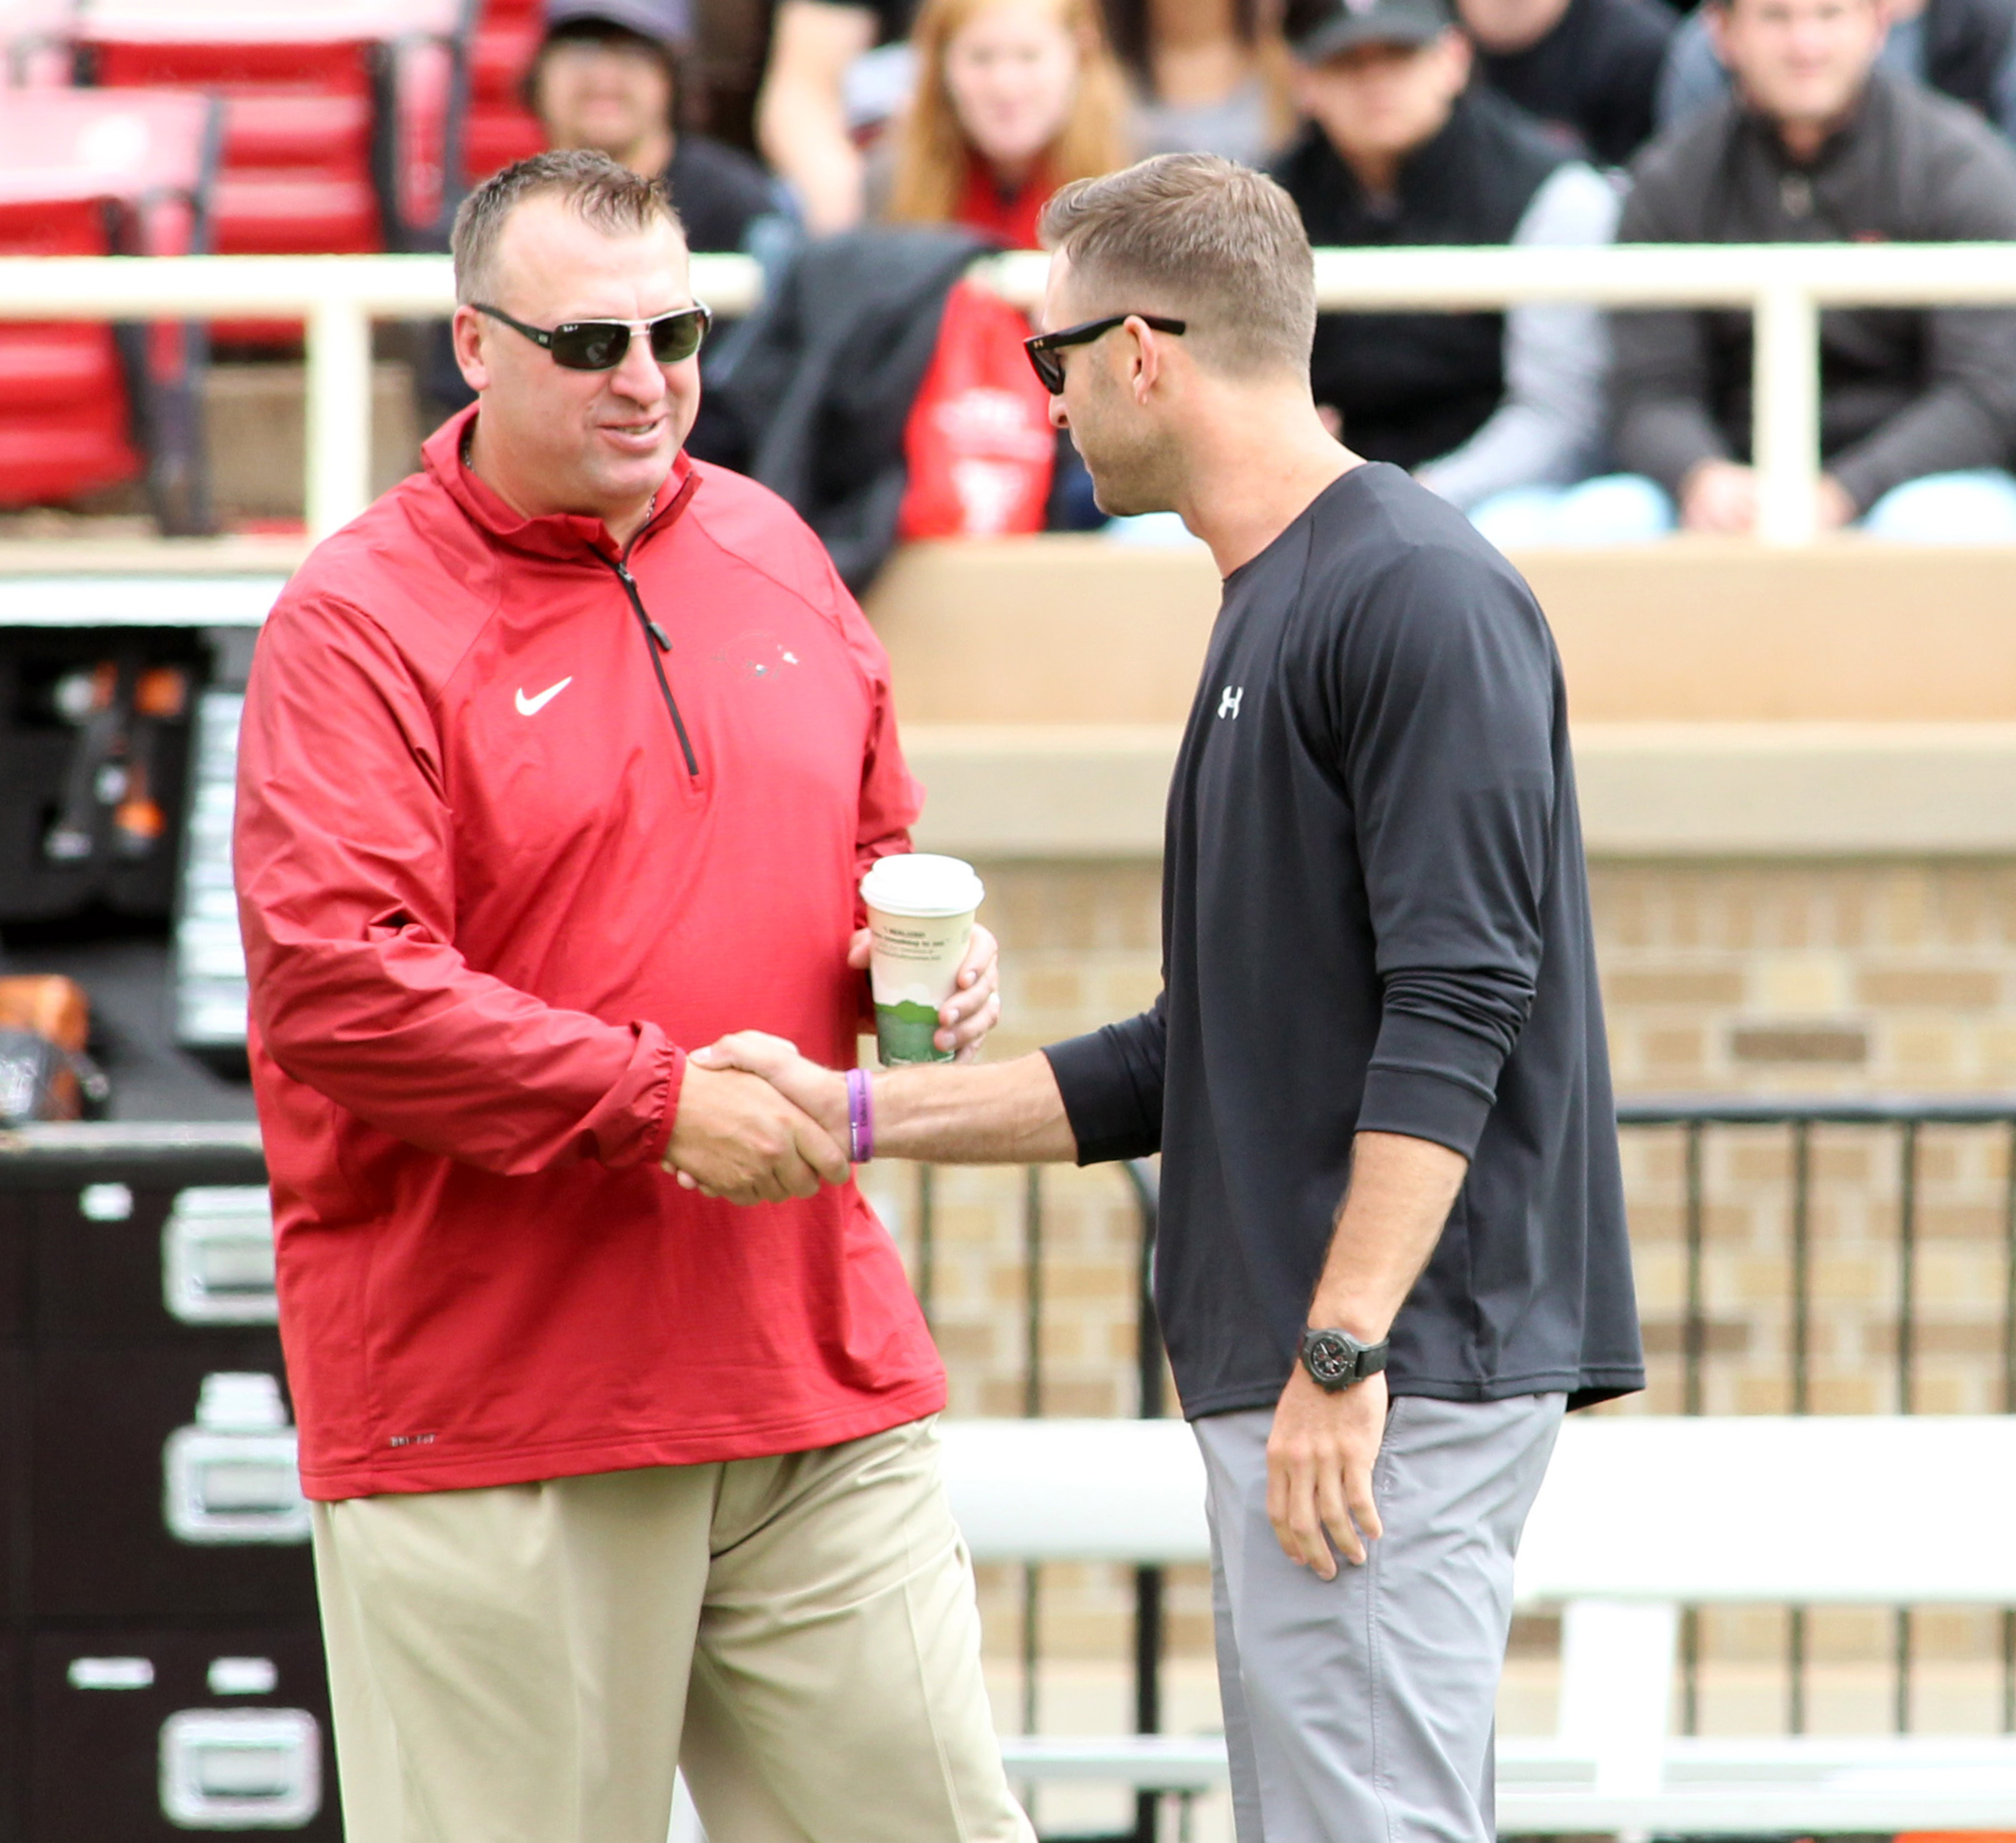 How'd you like that pounding, Kliffy?